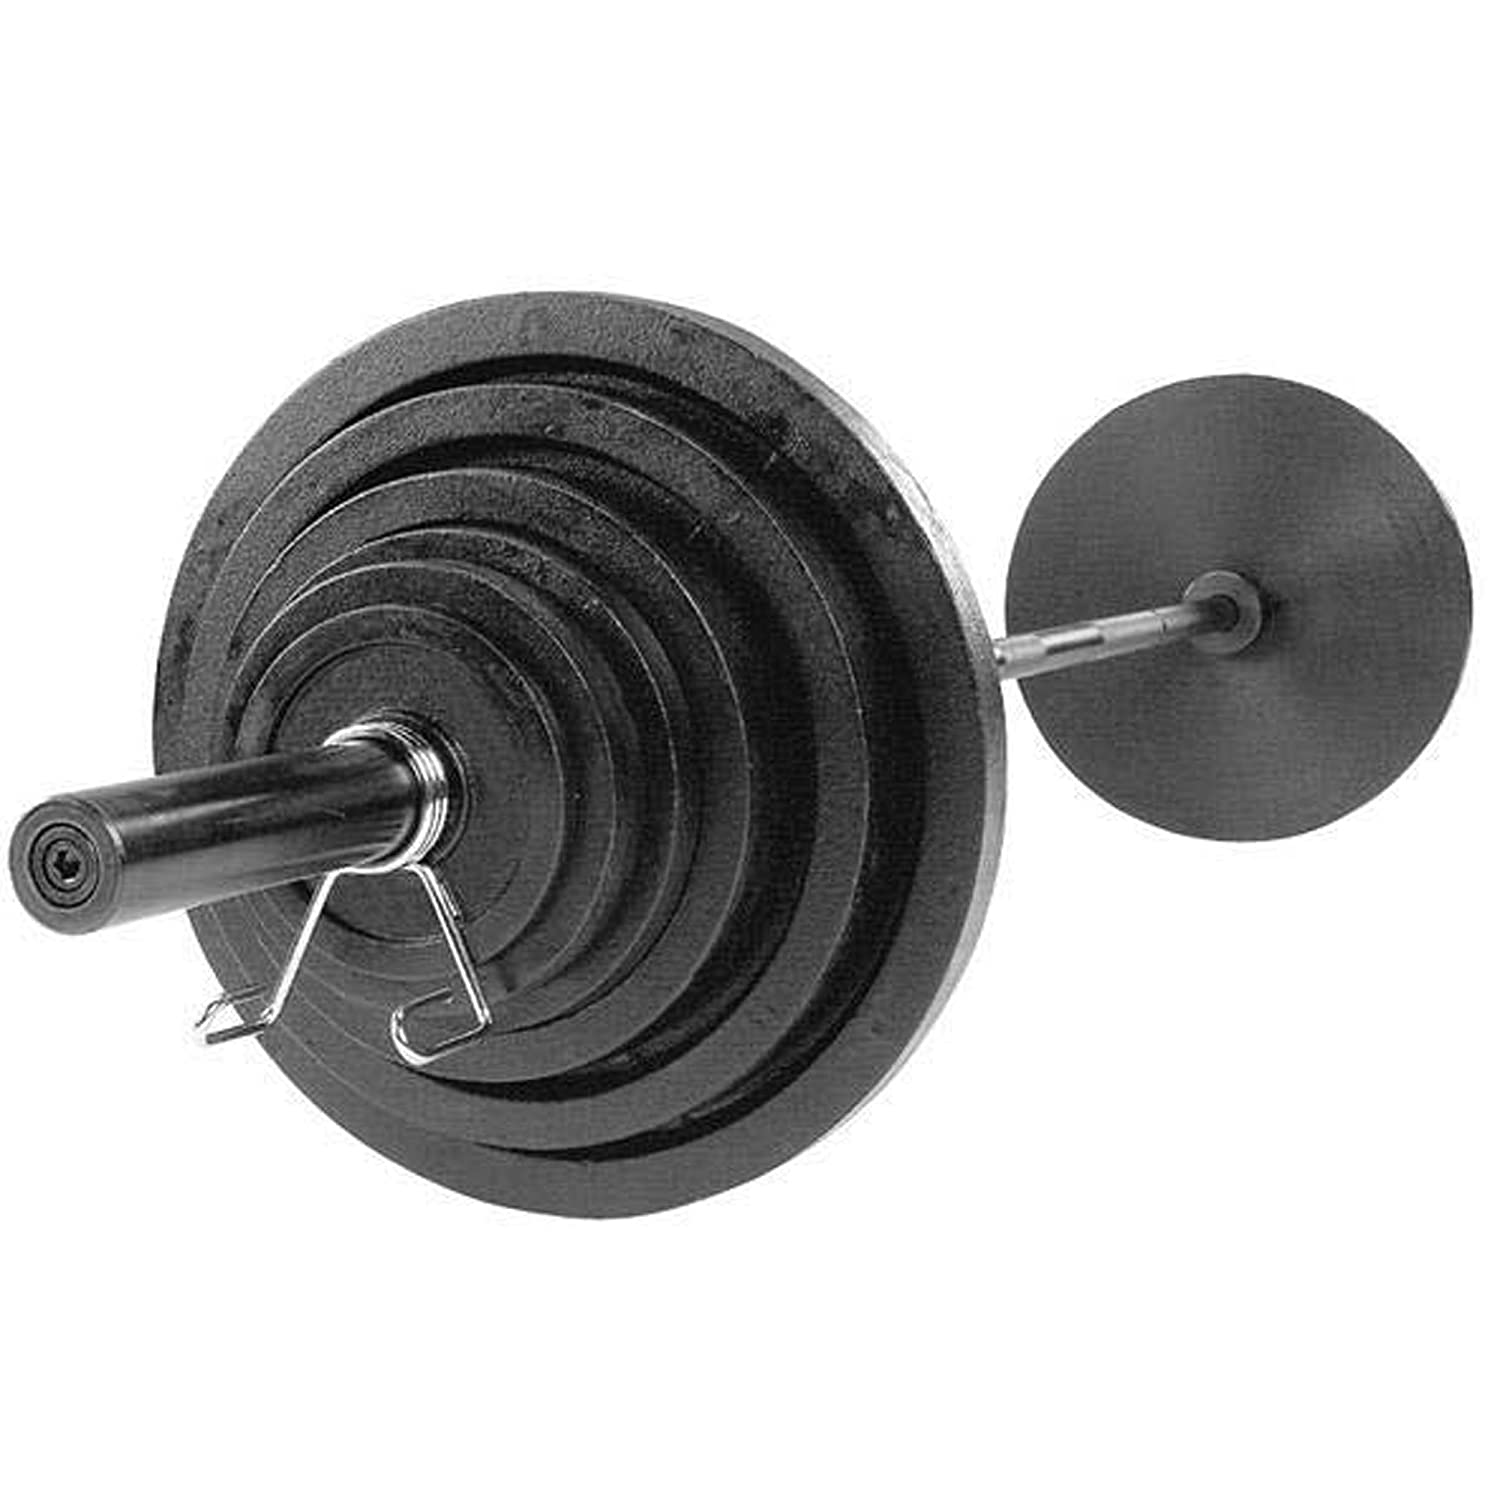 a7760973821 Amazon.com   Body-Solid OSB355 Cast Olympic Plates   Weight Plates   Sports    Outdoors